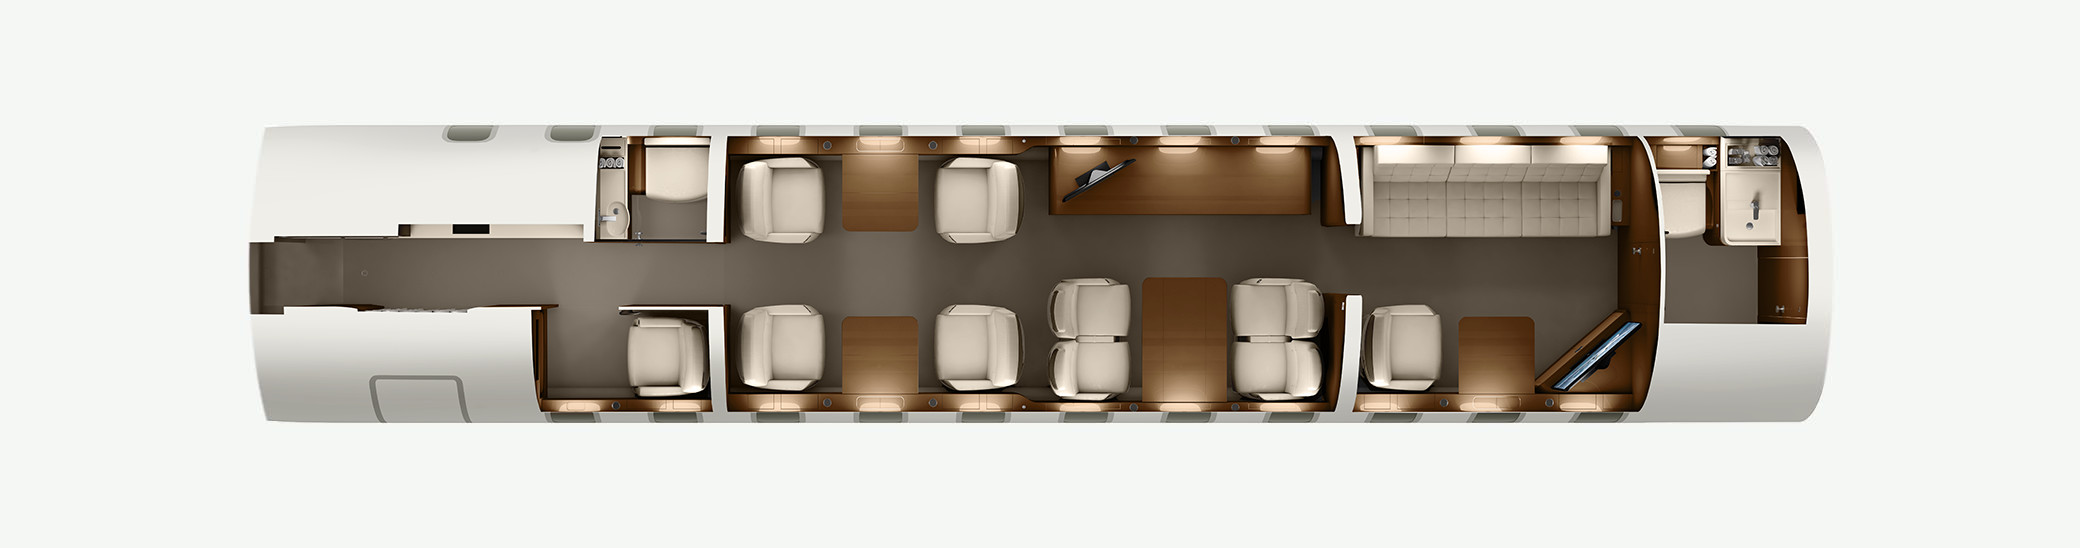 Global 8000 floor plan